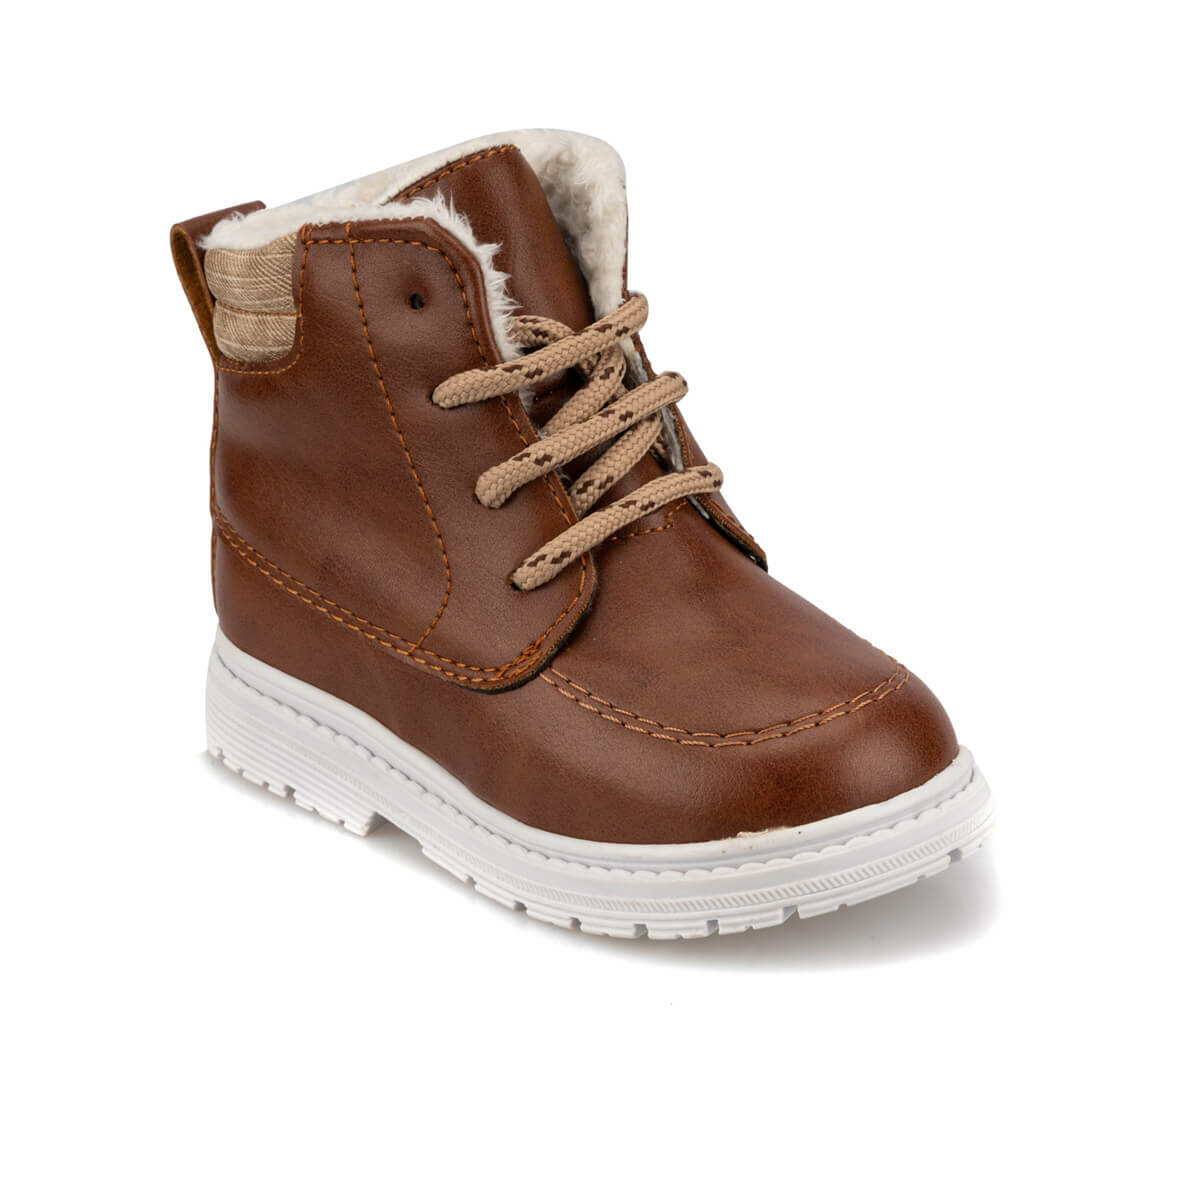 FLO 92.509575.B Brown Male Child Boots Polaris